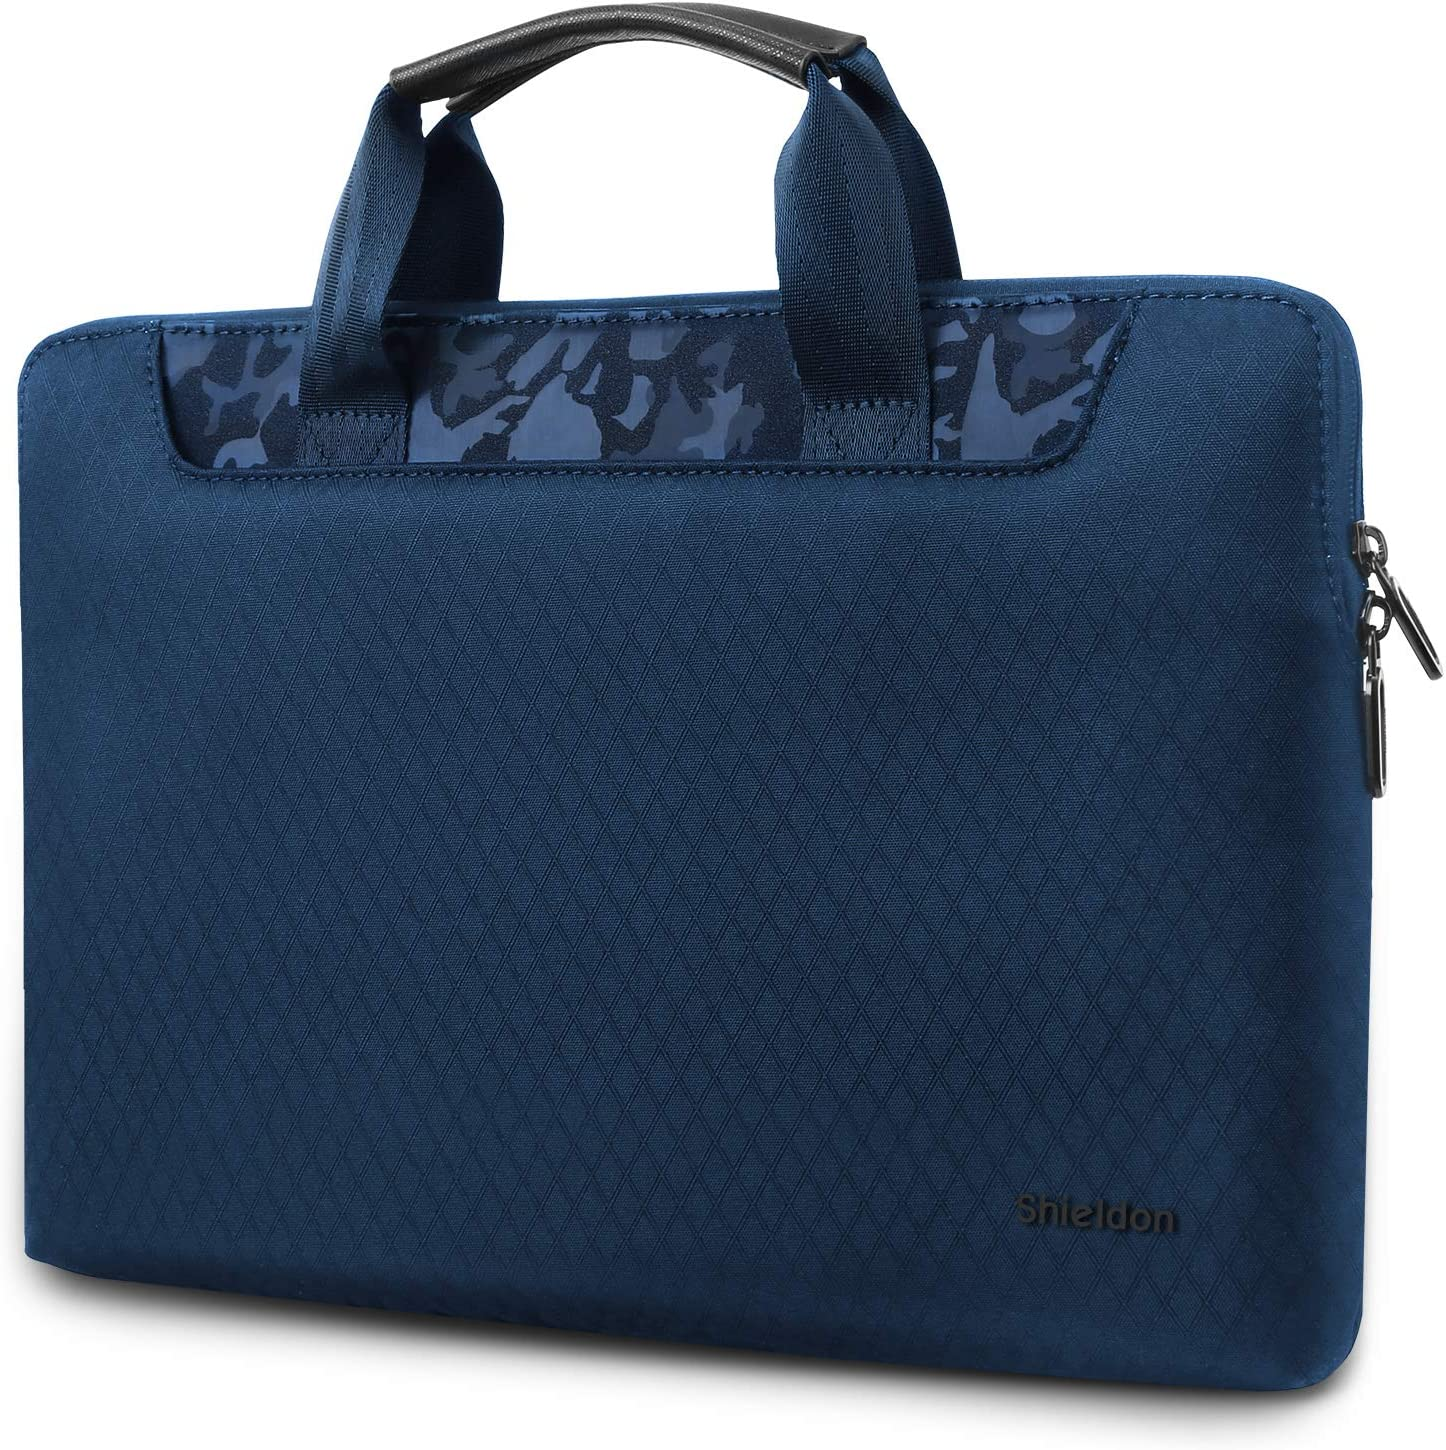 """SHIELDON 13-13.3 Inch Laptop Sleeve Case Carry-on Water Resistant Notebook Protective Bag Briefcase Compatible with 13"""" Macbook Air/Pro, iPad Pro, 13.5"""" Surface Book 2, 12.2"""" Acer Switch 3 - Blue"""